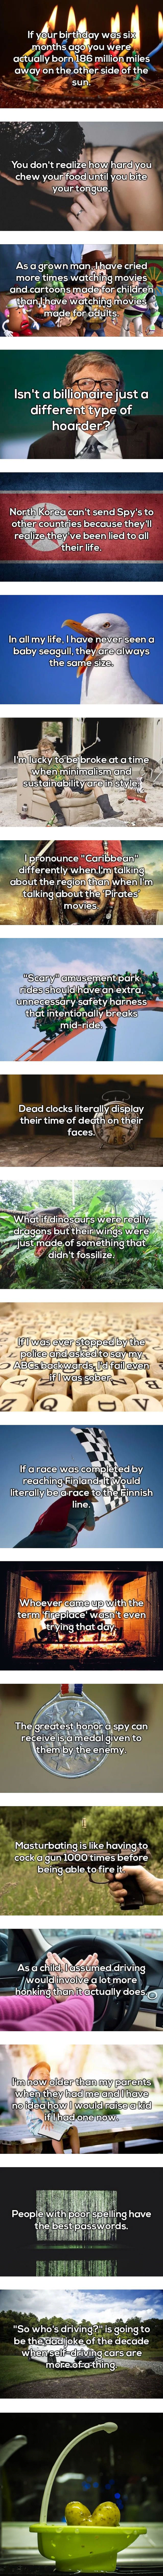 20 Greatest Shower Thoughts Of All Time